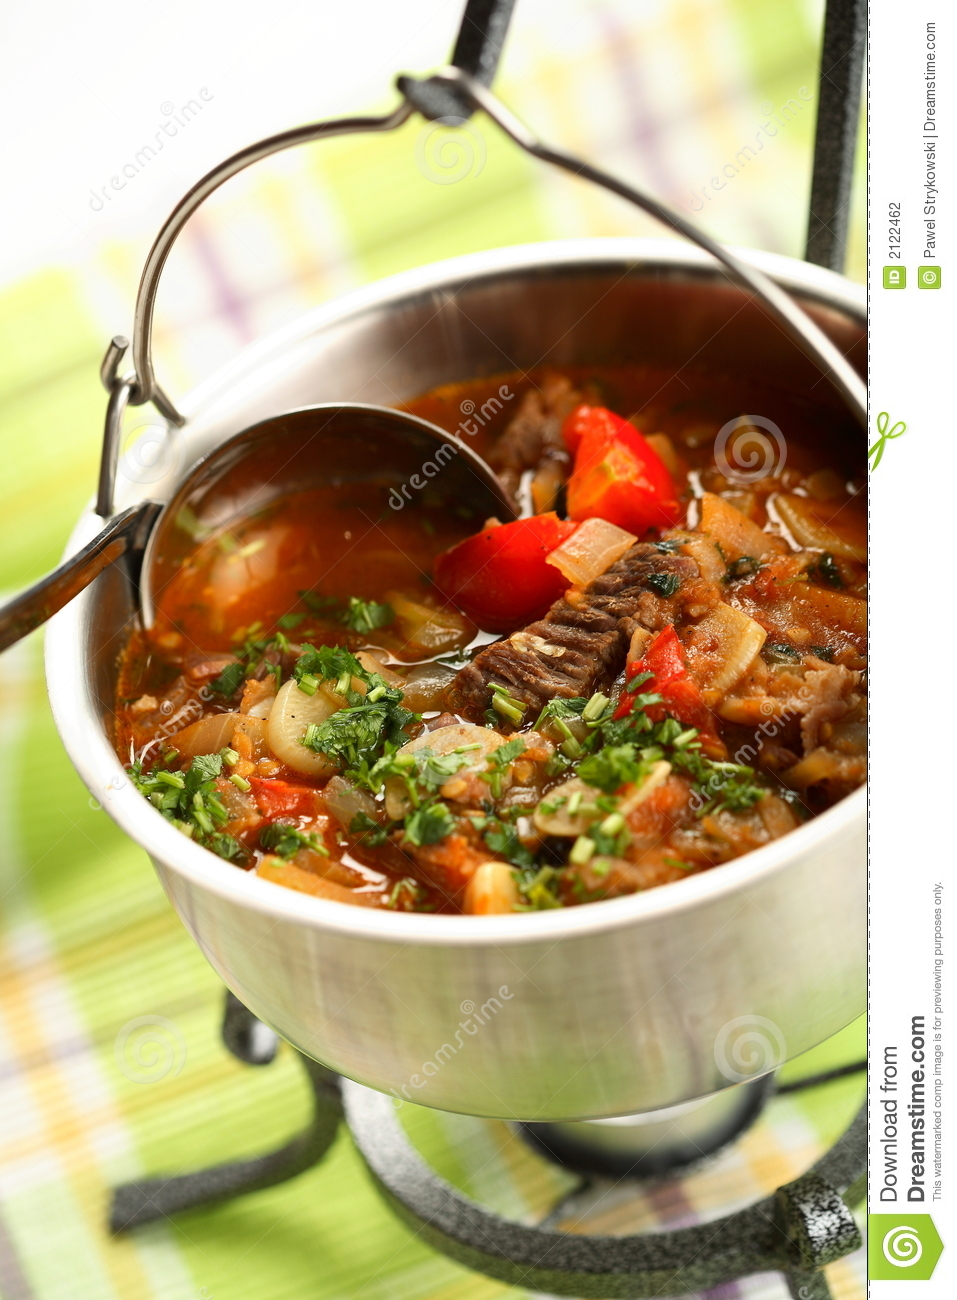 Densest soup with meat